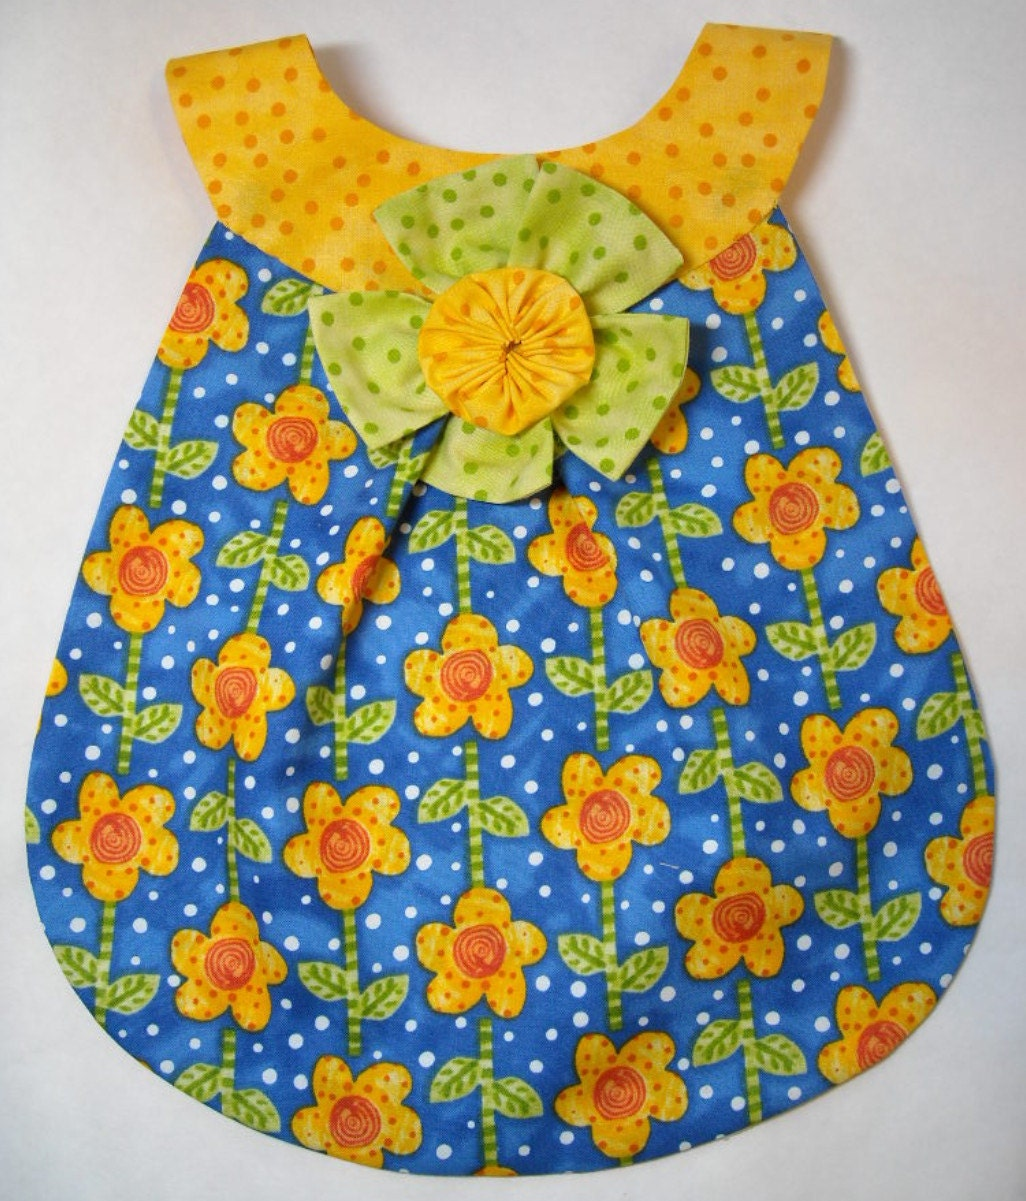 DIVA BABY BIB KIT! PATTERN! EASY AND FUN! GREAT BABY GIFT!